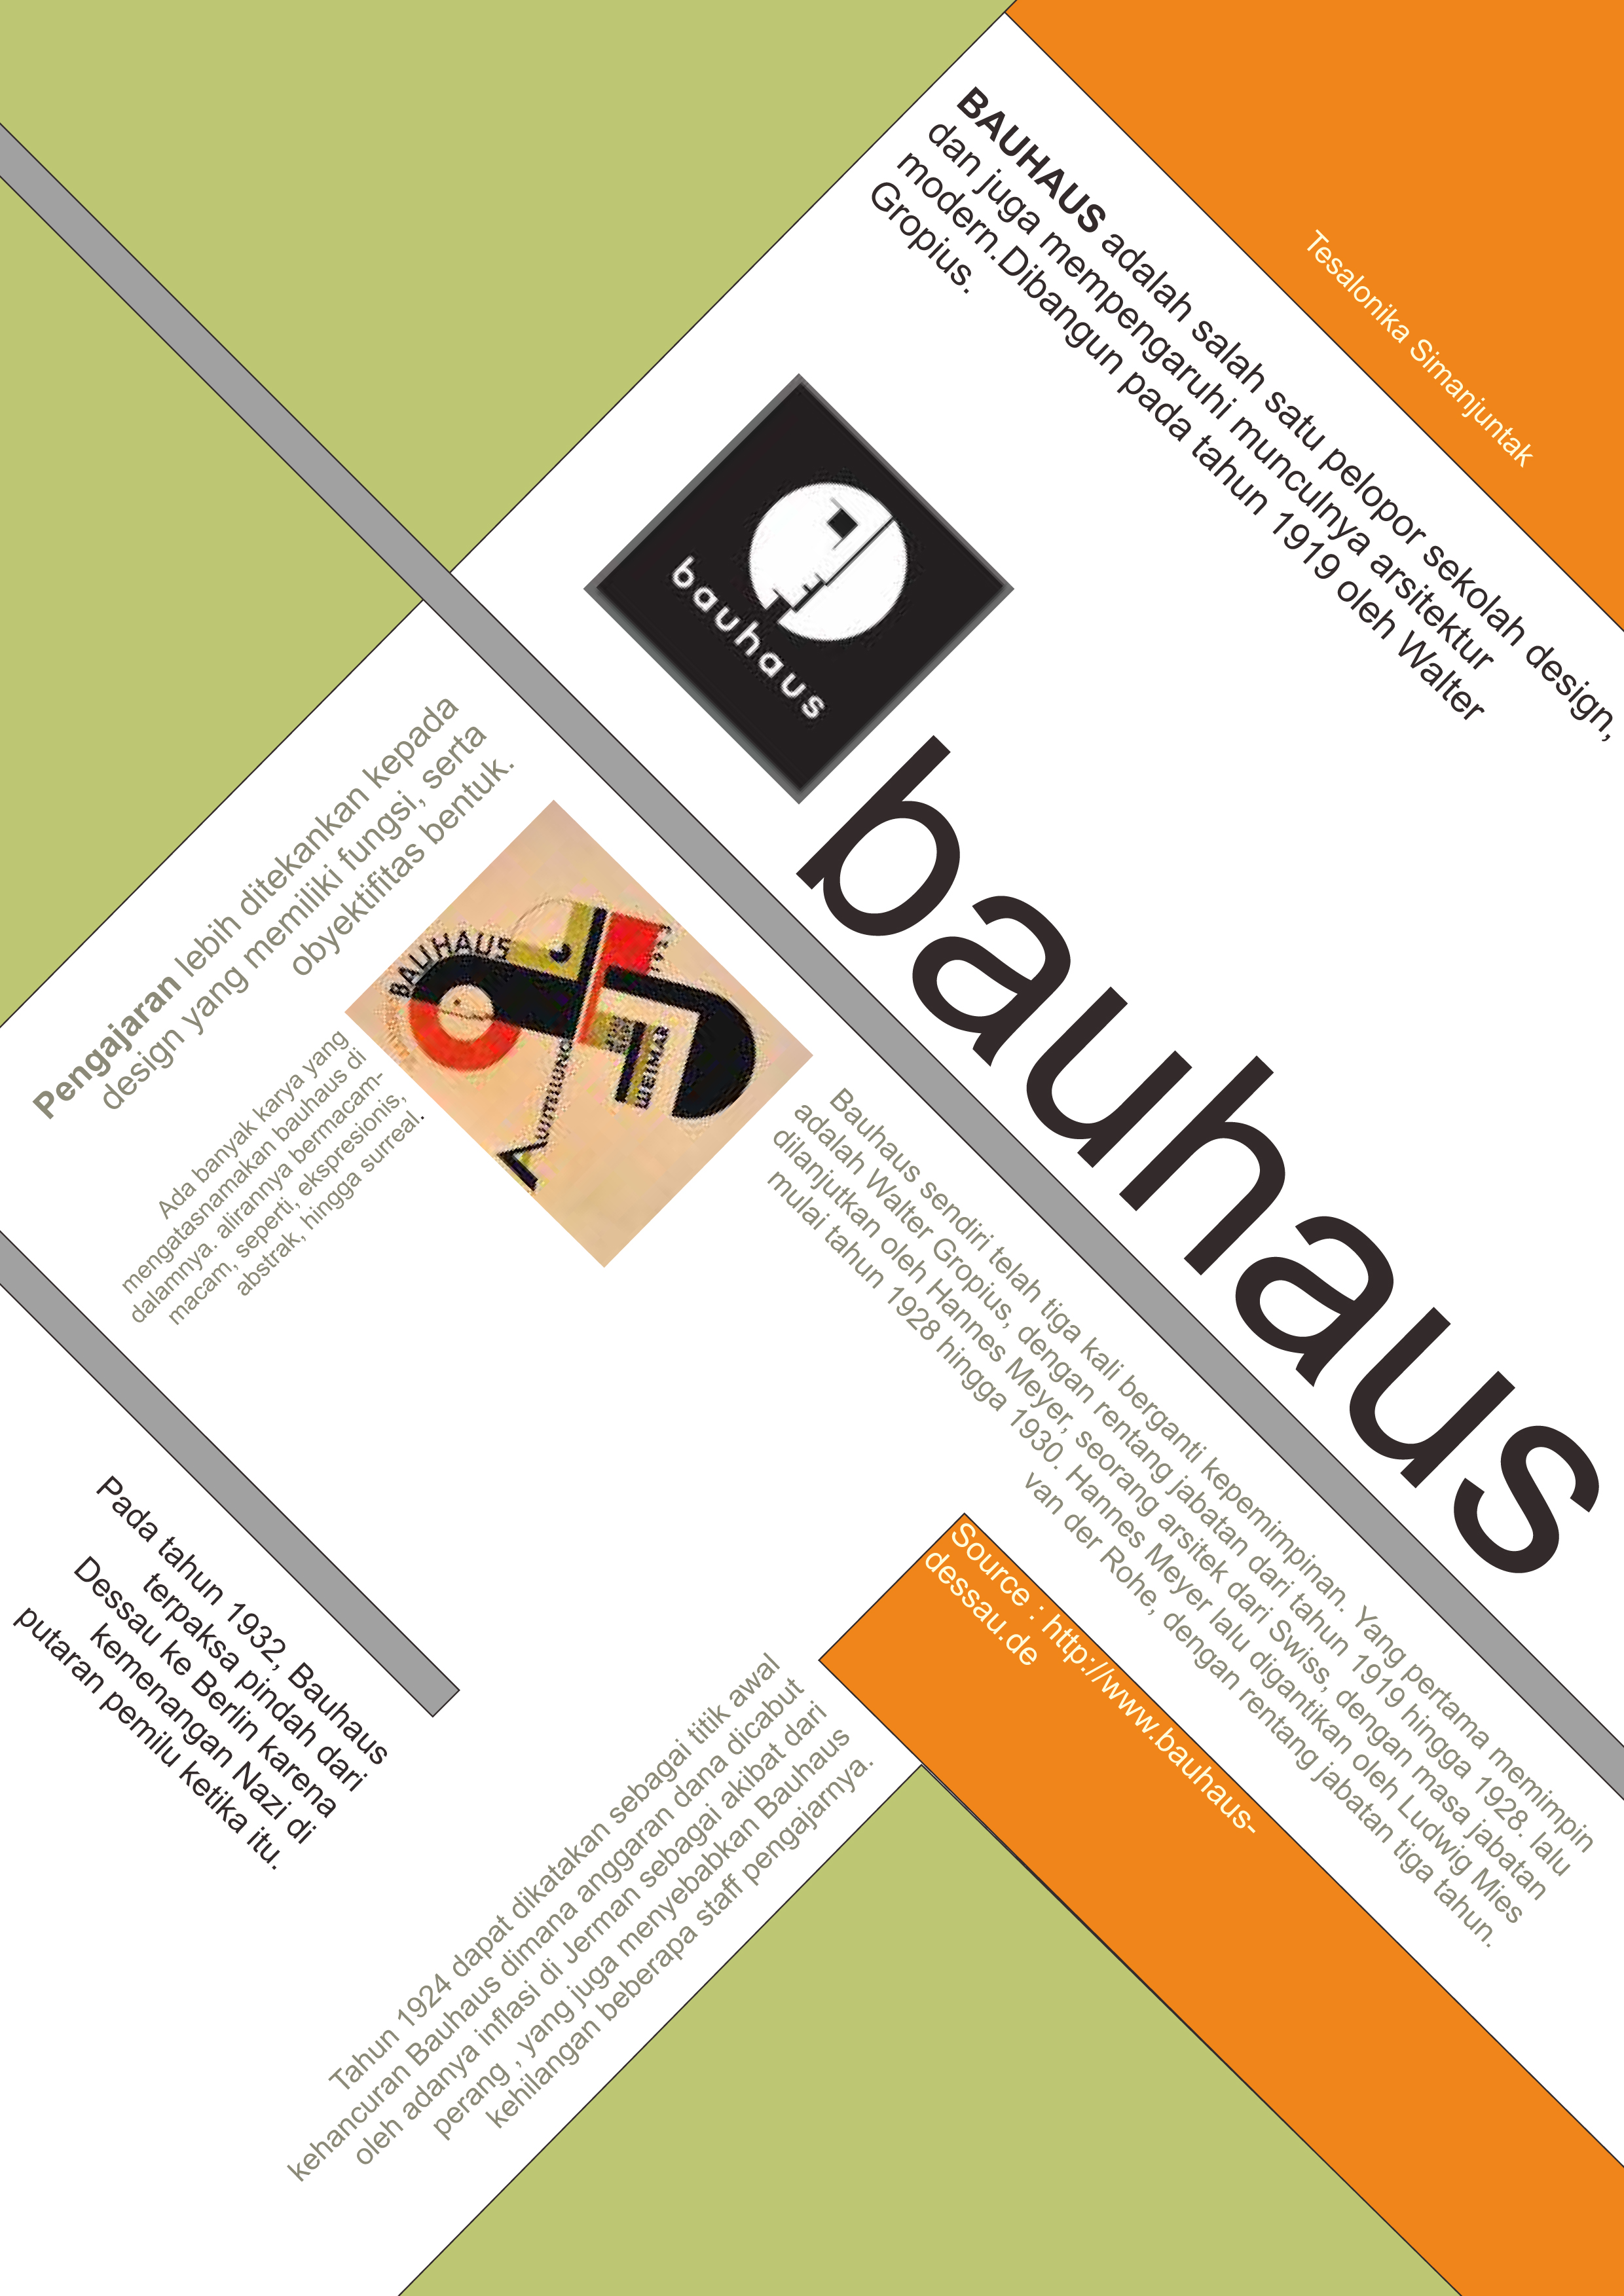 a history of bauhaus A selected list of guides to to the bauhaus school, founded in 1919 in weimar, germany (moving to dessau in 1925) by architect walter gropius, and highlights of some of its major figures many major 20th-century designers and artists—among them, josef albers, herbert bayer, marcel breuer, paul.